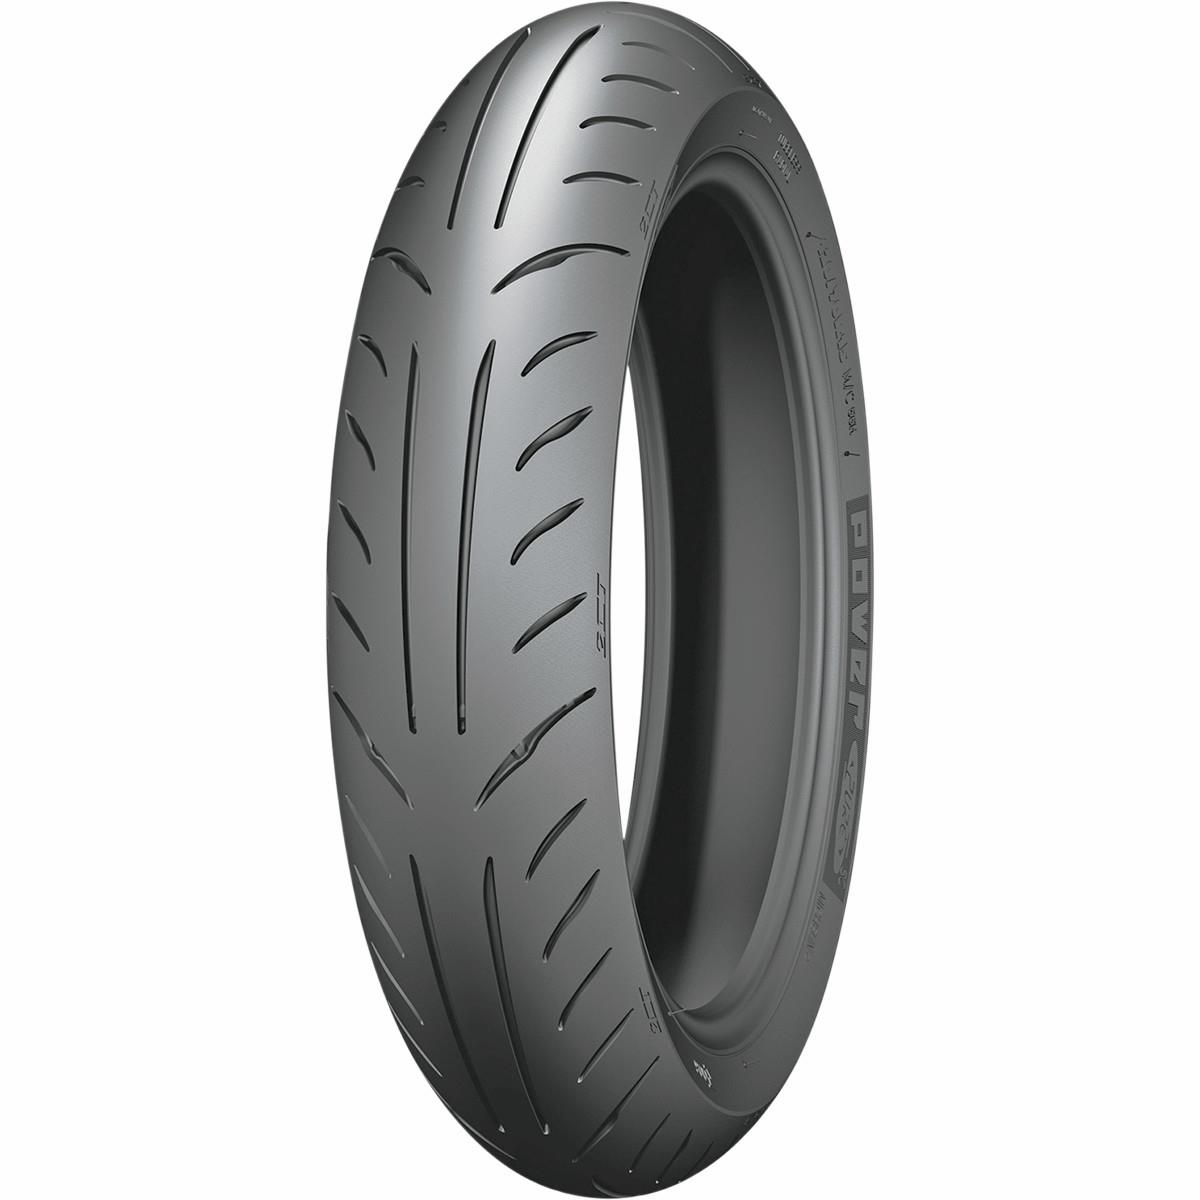 michelin power pure sc front rear tires 2wheel. Black Bedroom Furniture Sets. Home Design Ideas